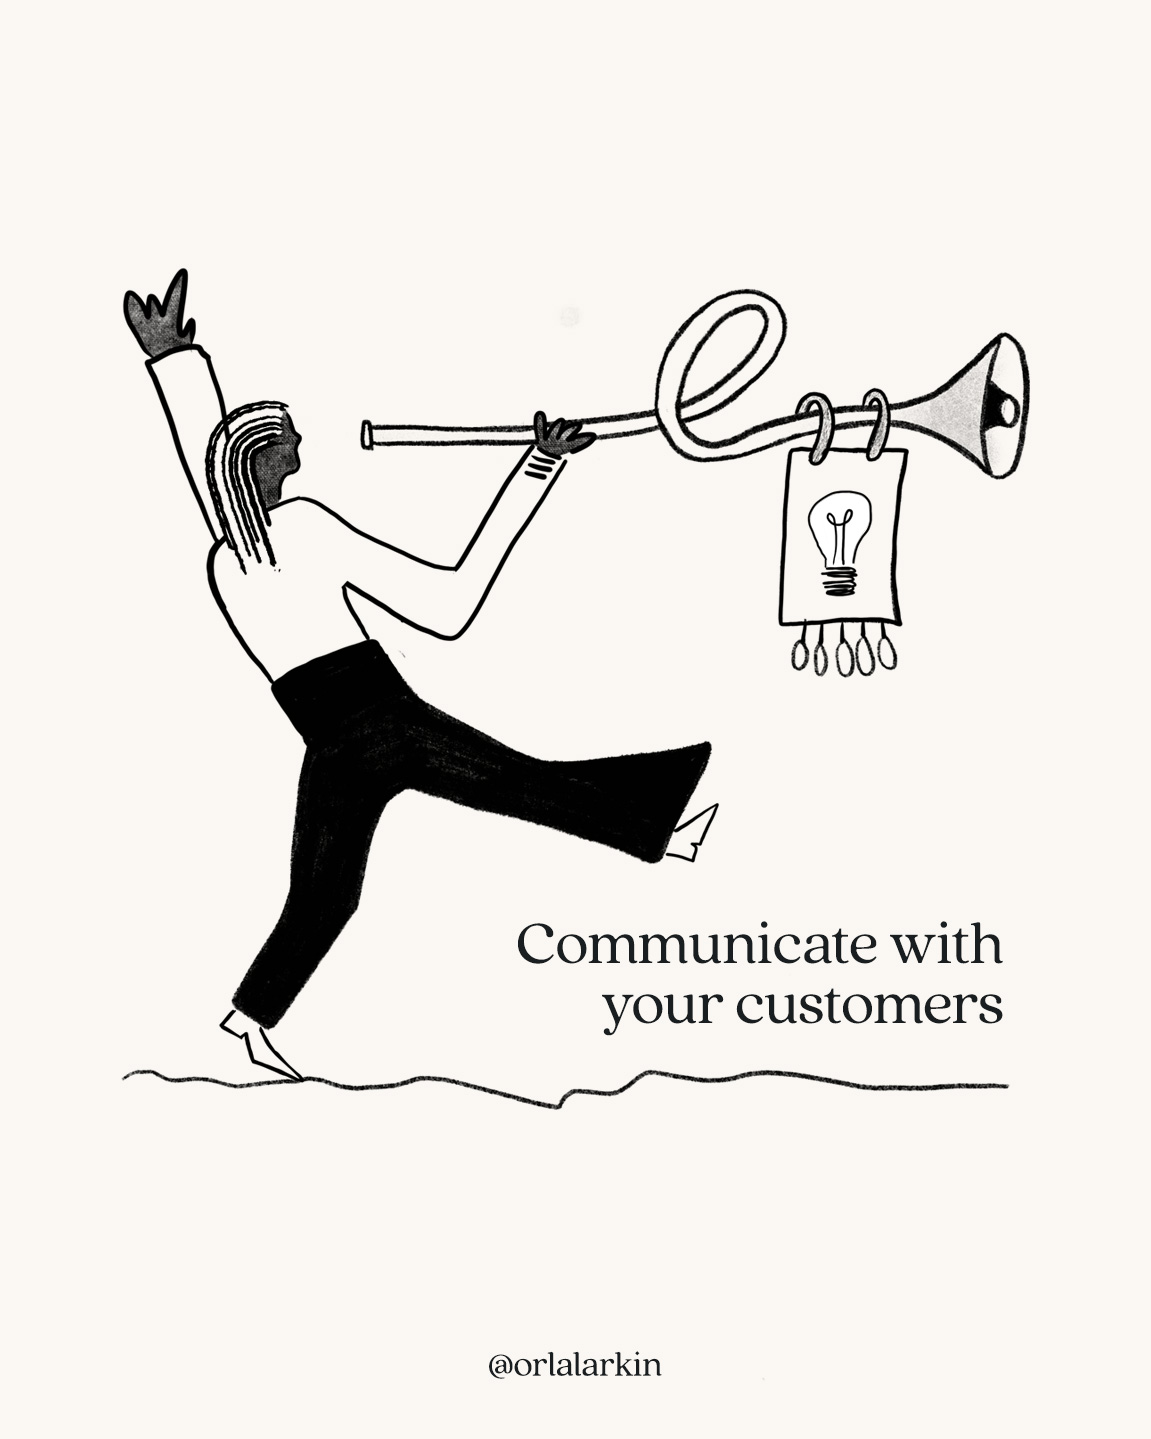 Communicate with your customers